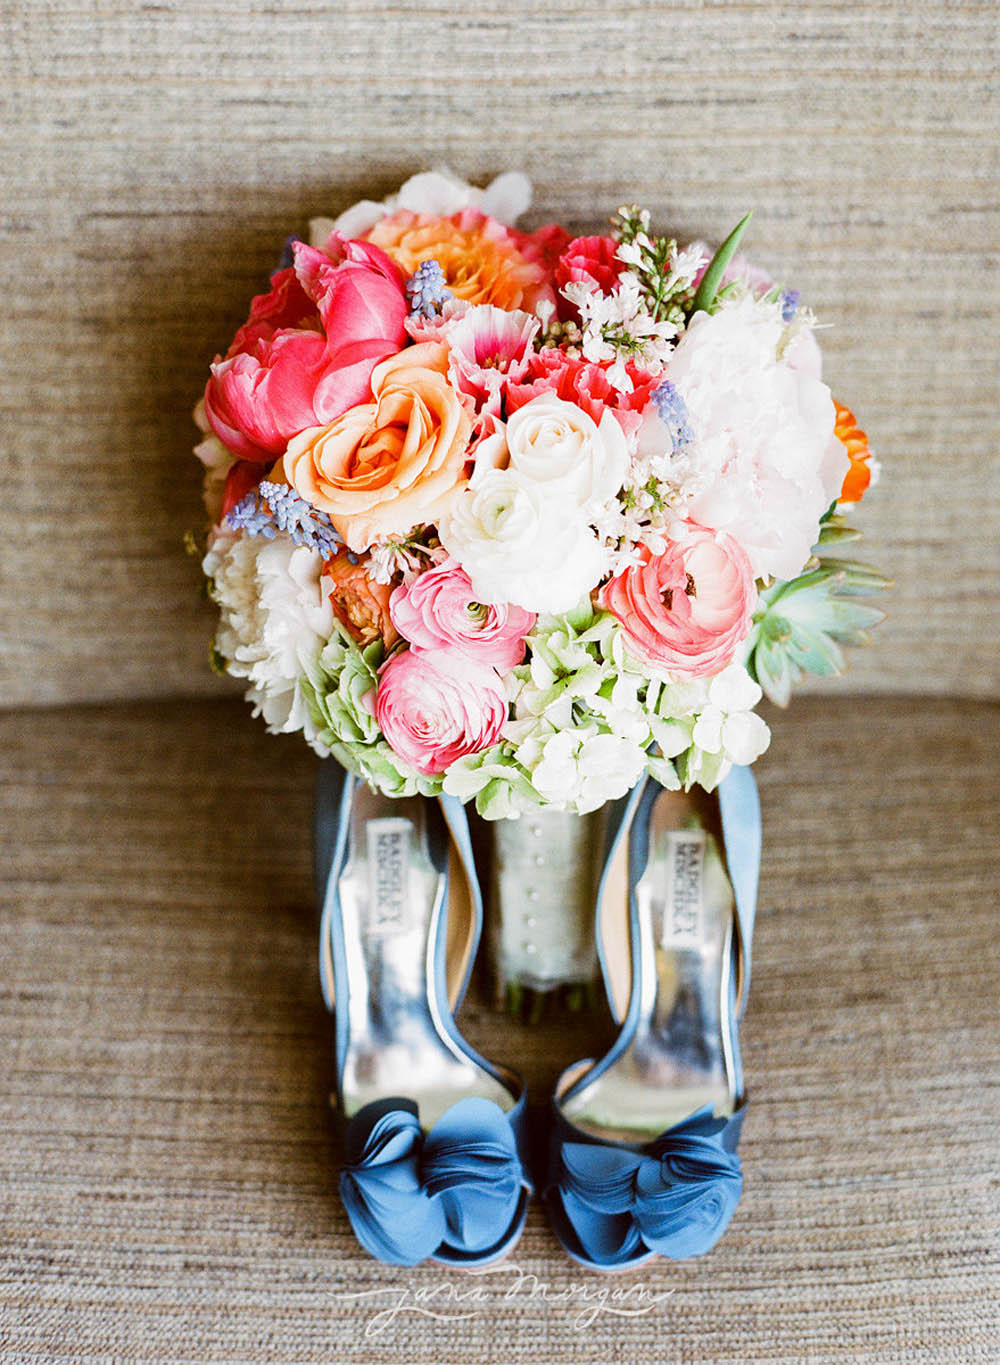 bridal-floral-wedding-design.jpg